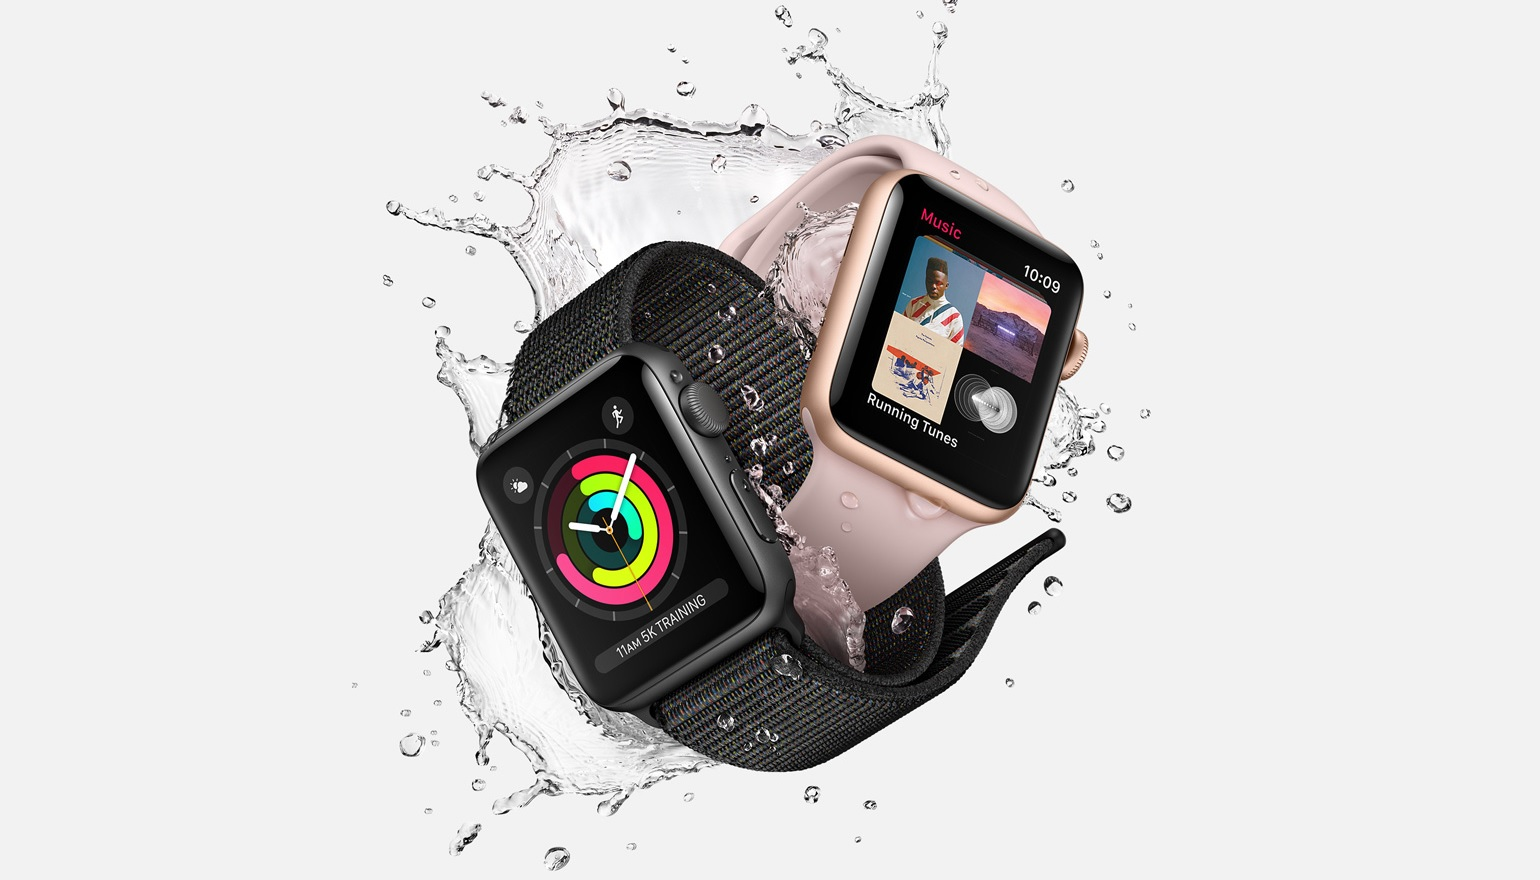 Apple Watch is de meest populaire wearable van dit moment